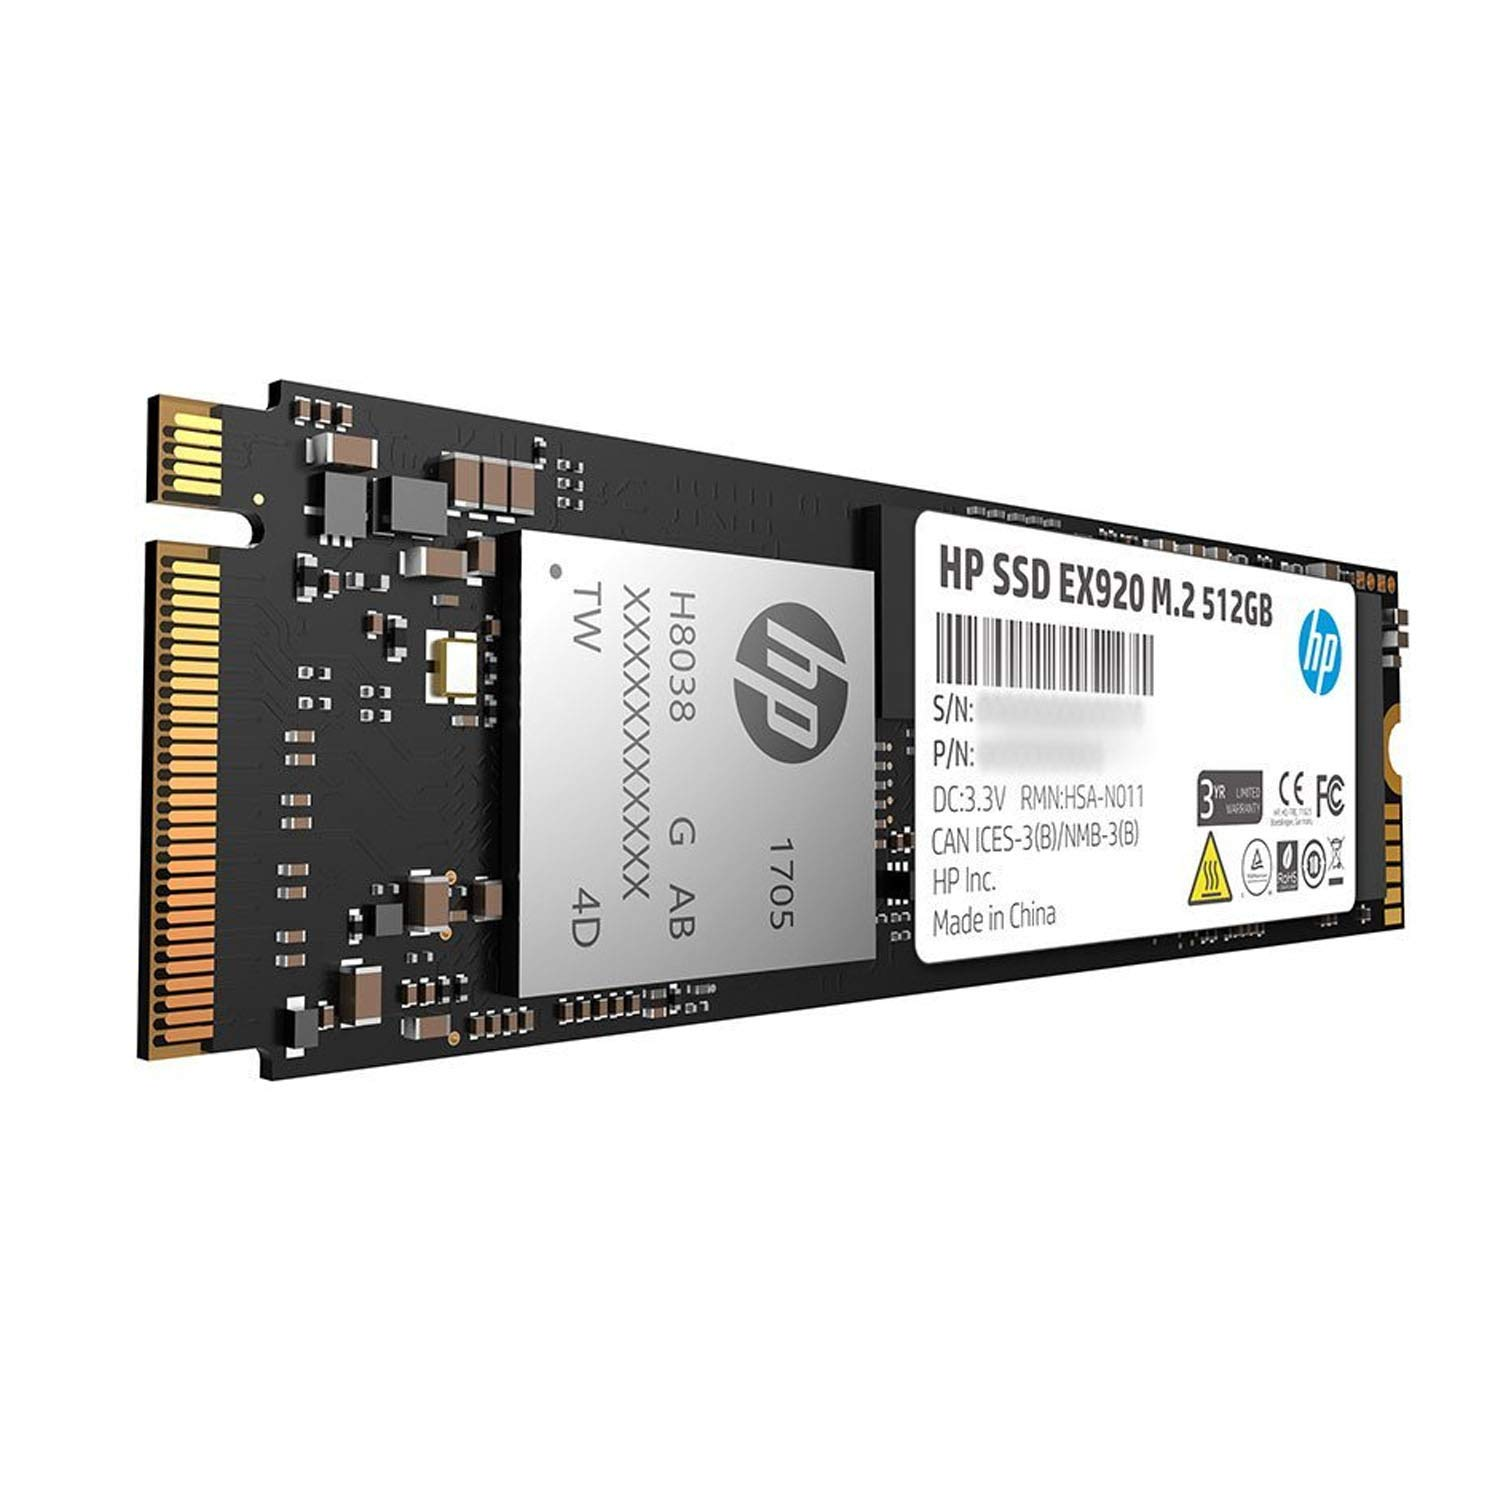 HP EX920 M 2 512GB PCIe 3 1 x4 NVMe 3D TLC NAND: Amazon in